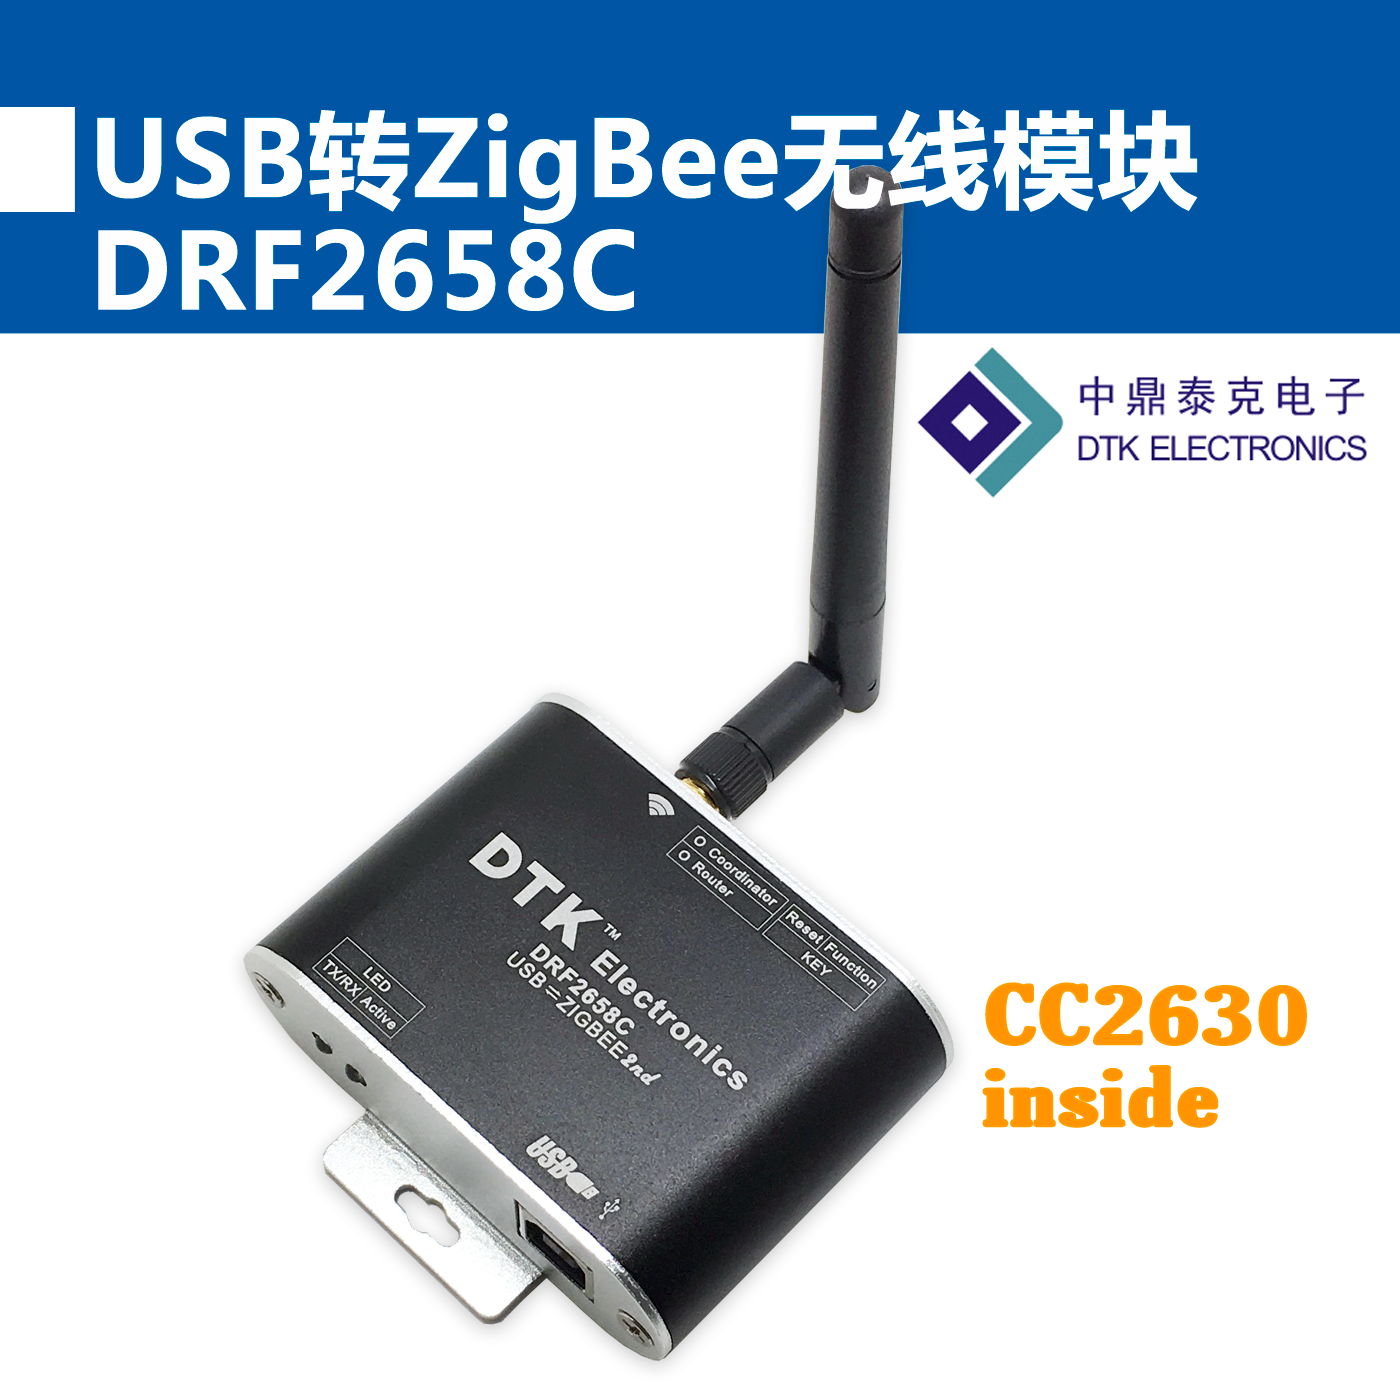 USB Switch to ZigBee Wireless Module (1.6 Km Transmission, CC2630 Chip, Far Beyond CC2530) zigbee cc2530 wireless transmission module rs485 to zigbee board development board industrial grade